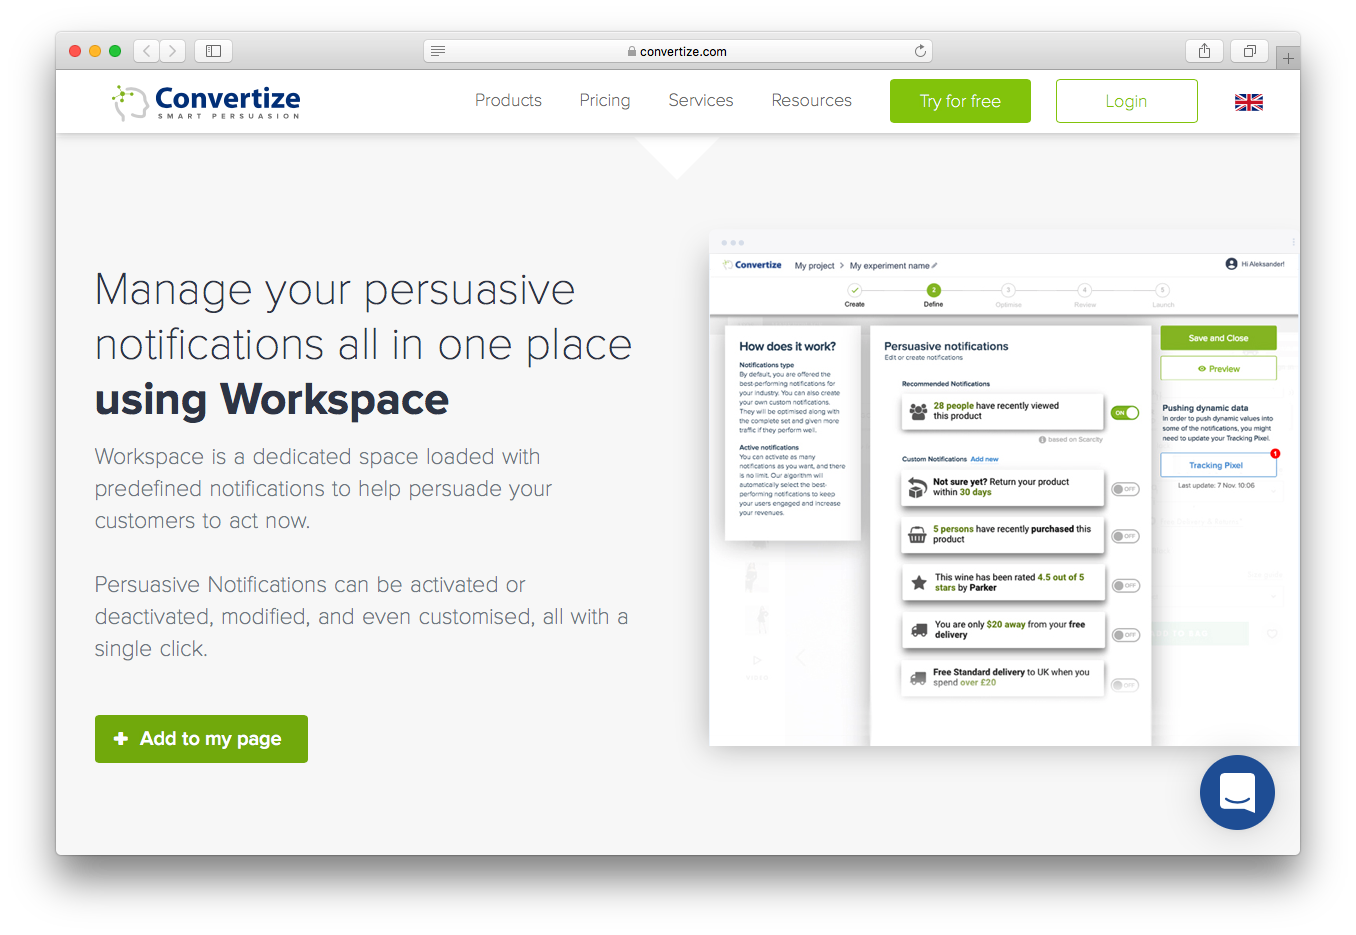 Convertize manage persuasive notifications workspace